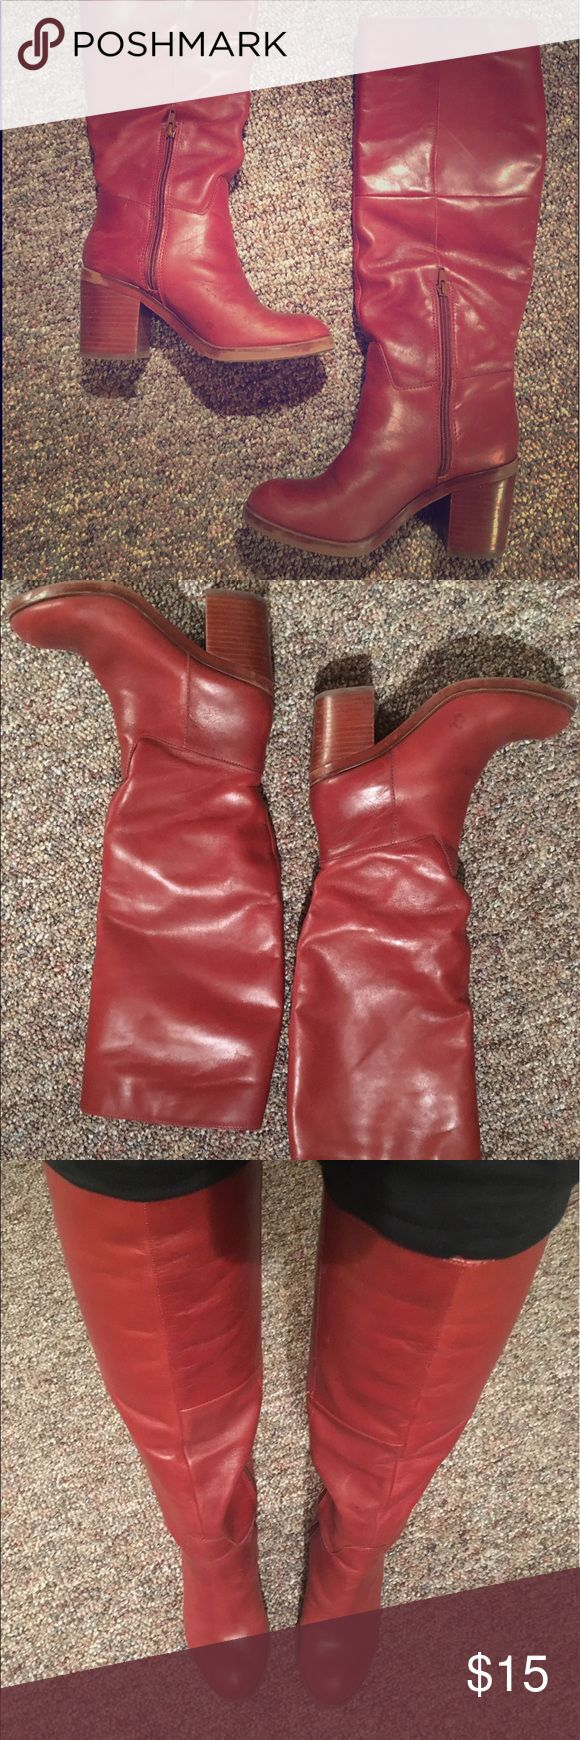 Red Aldo boots Good condition, minor scratches (could be polished out), super comfortable! Aldo Shoes Heeled Boots